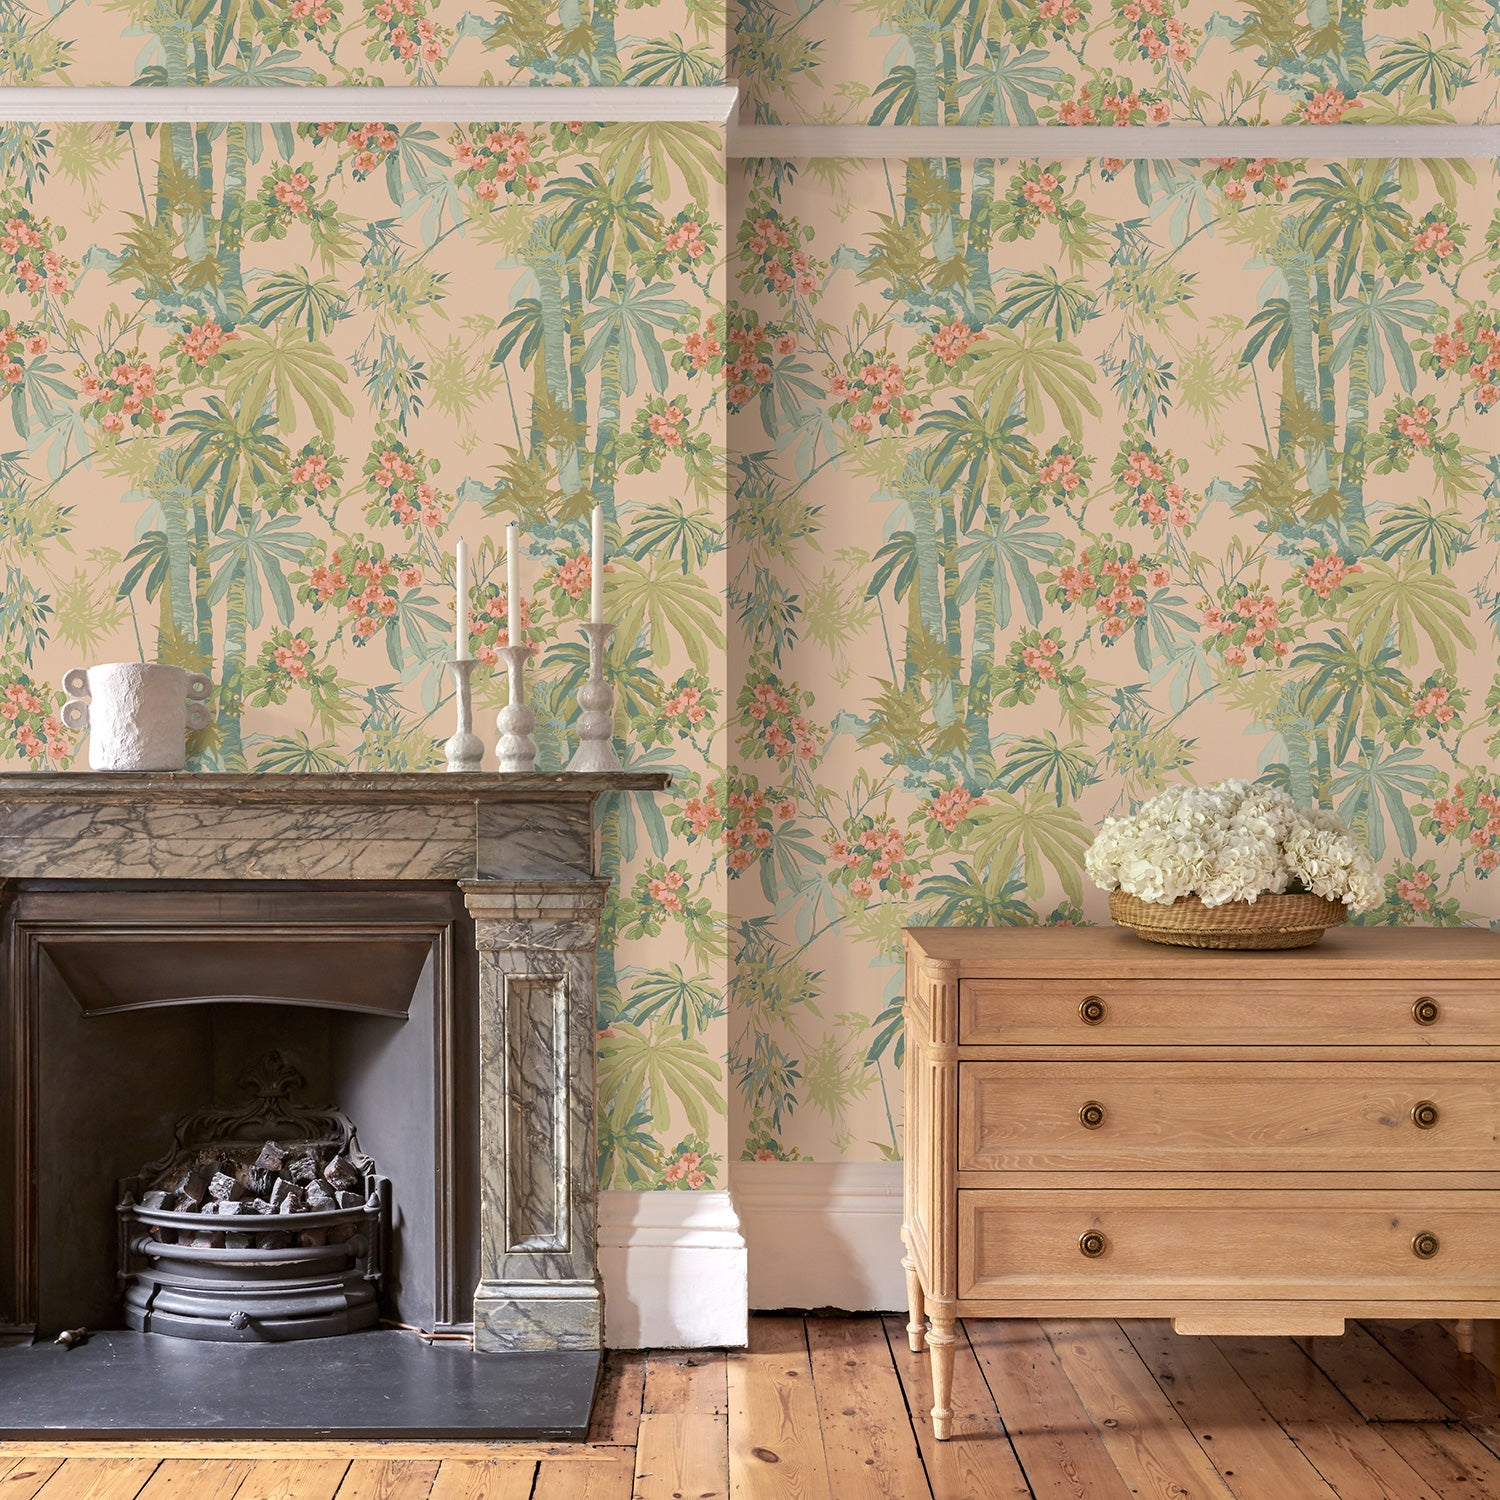 Lounge room featuring a Designer wallpaper with a pink tropical palm tree design